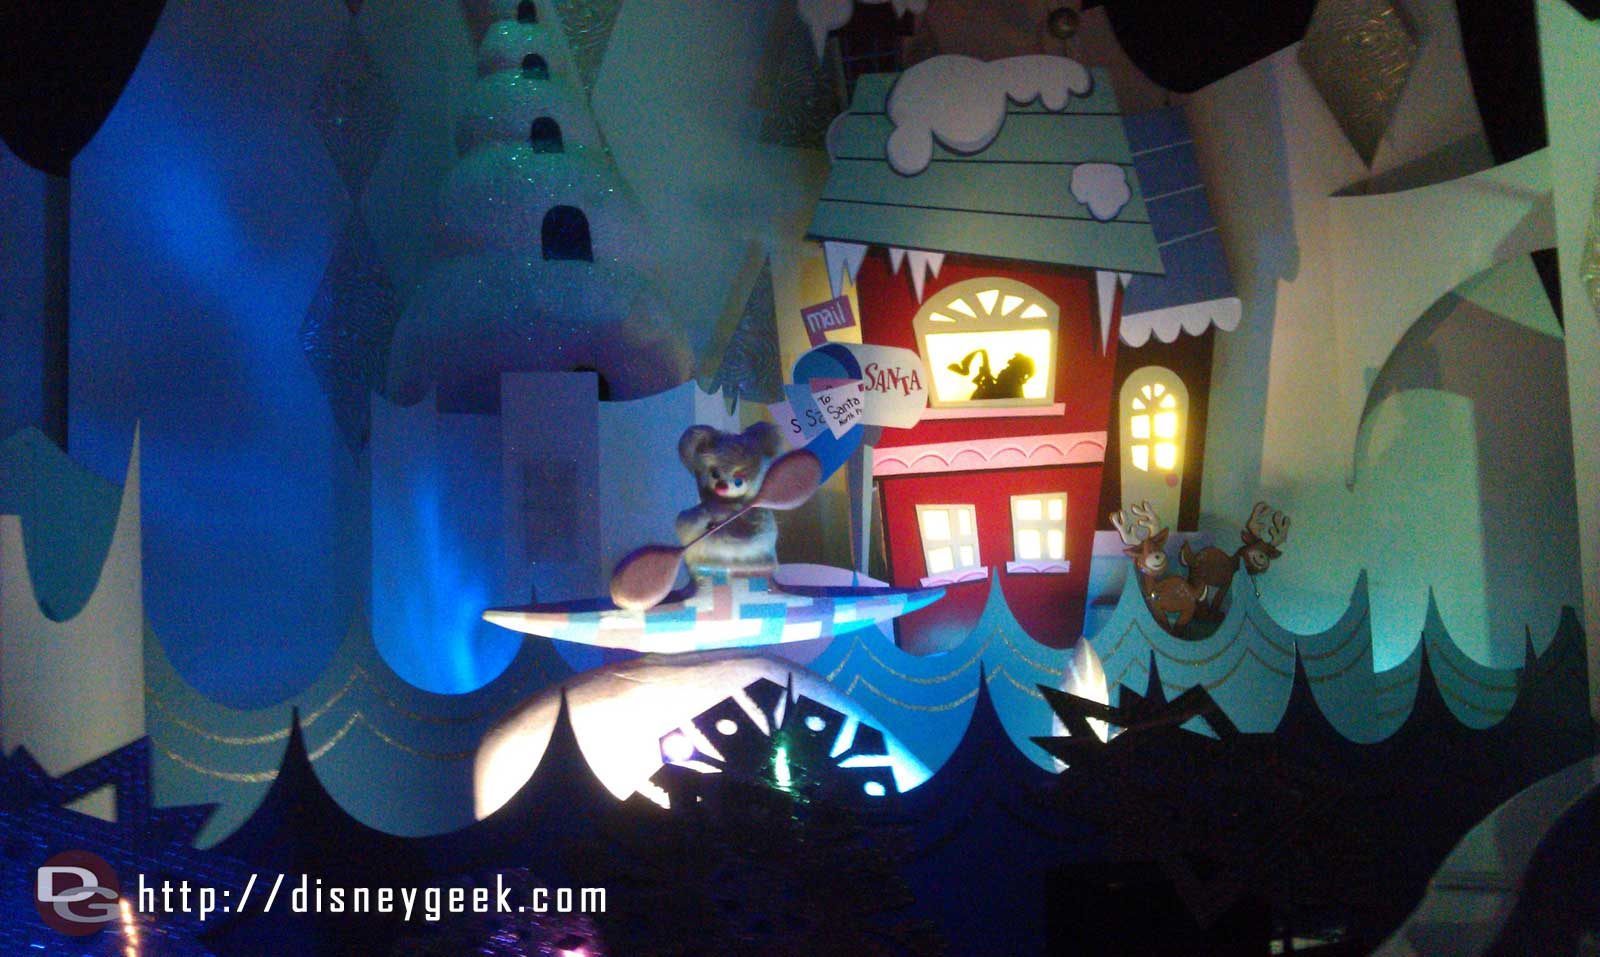 Small World Holiday, only a five minute wait this afternoon